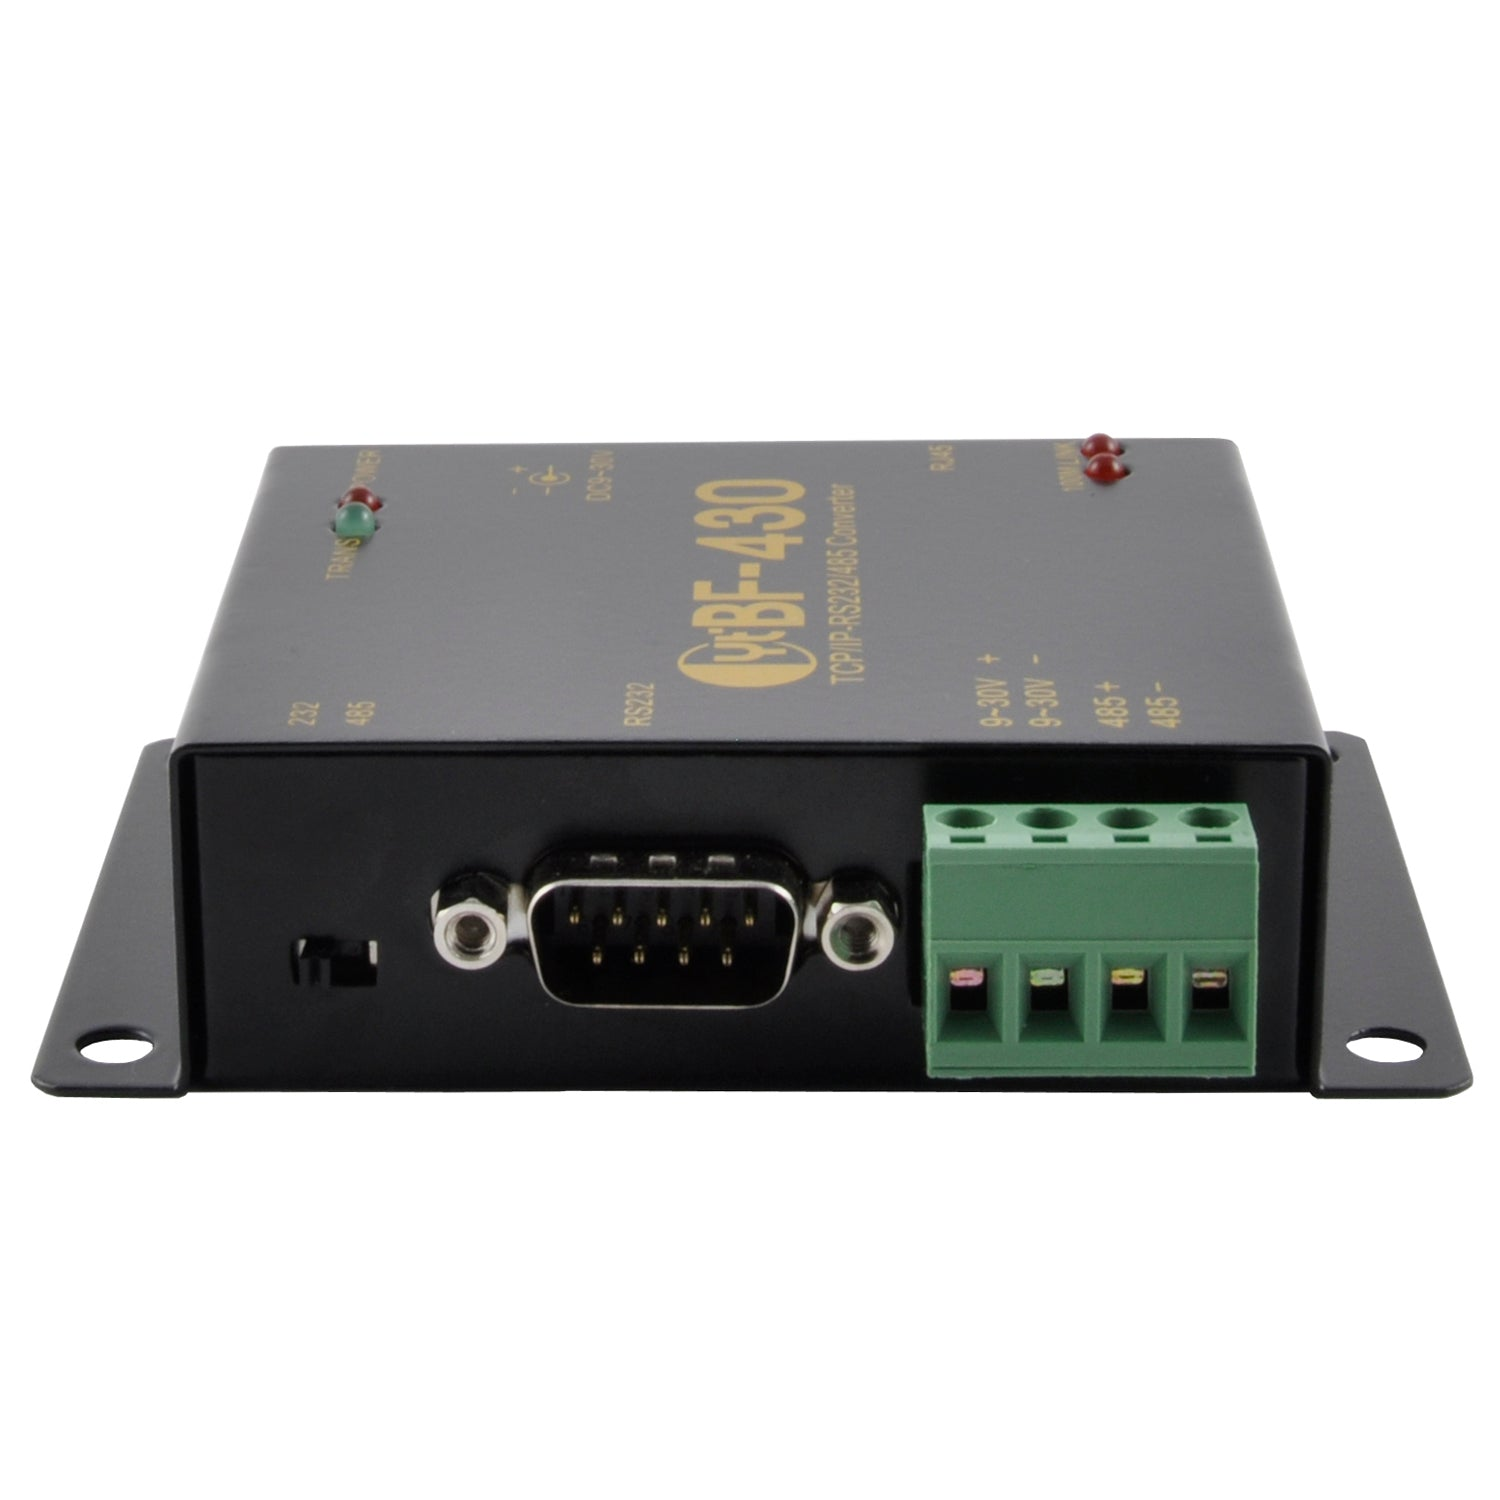 Rs232 Ethernet Converter Bf 430 Grid Connect Usb To Serial Adapter Schematic Circuit Hd Walls Find 6900